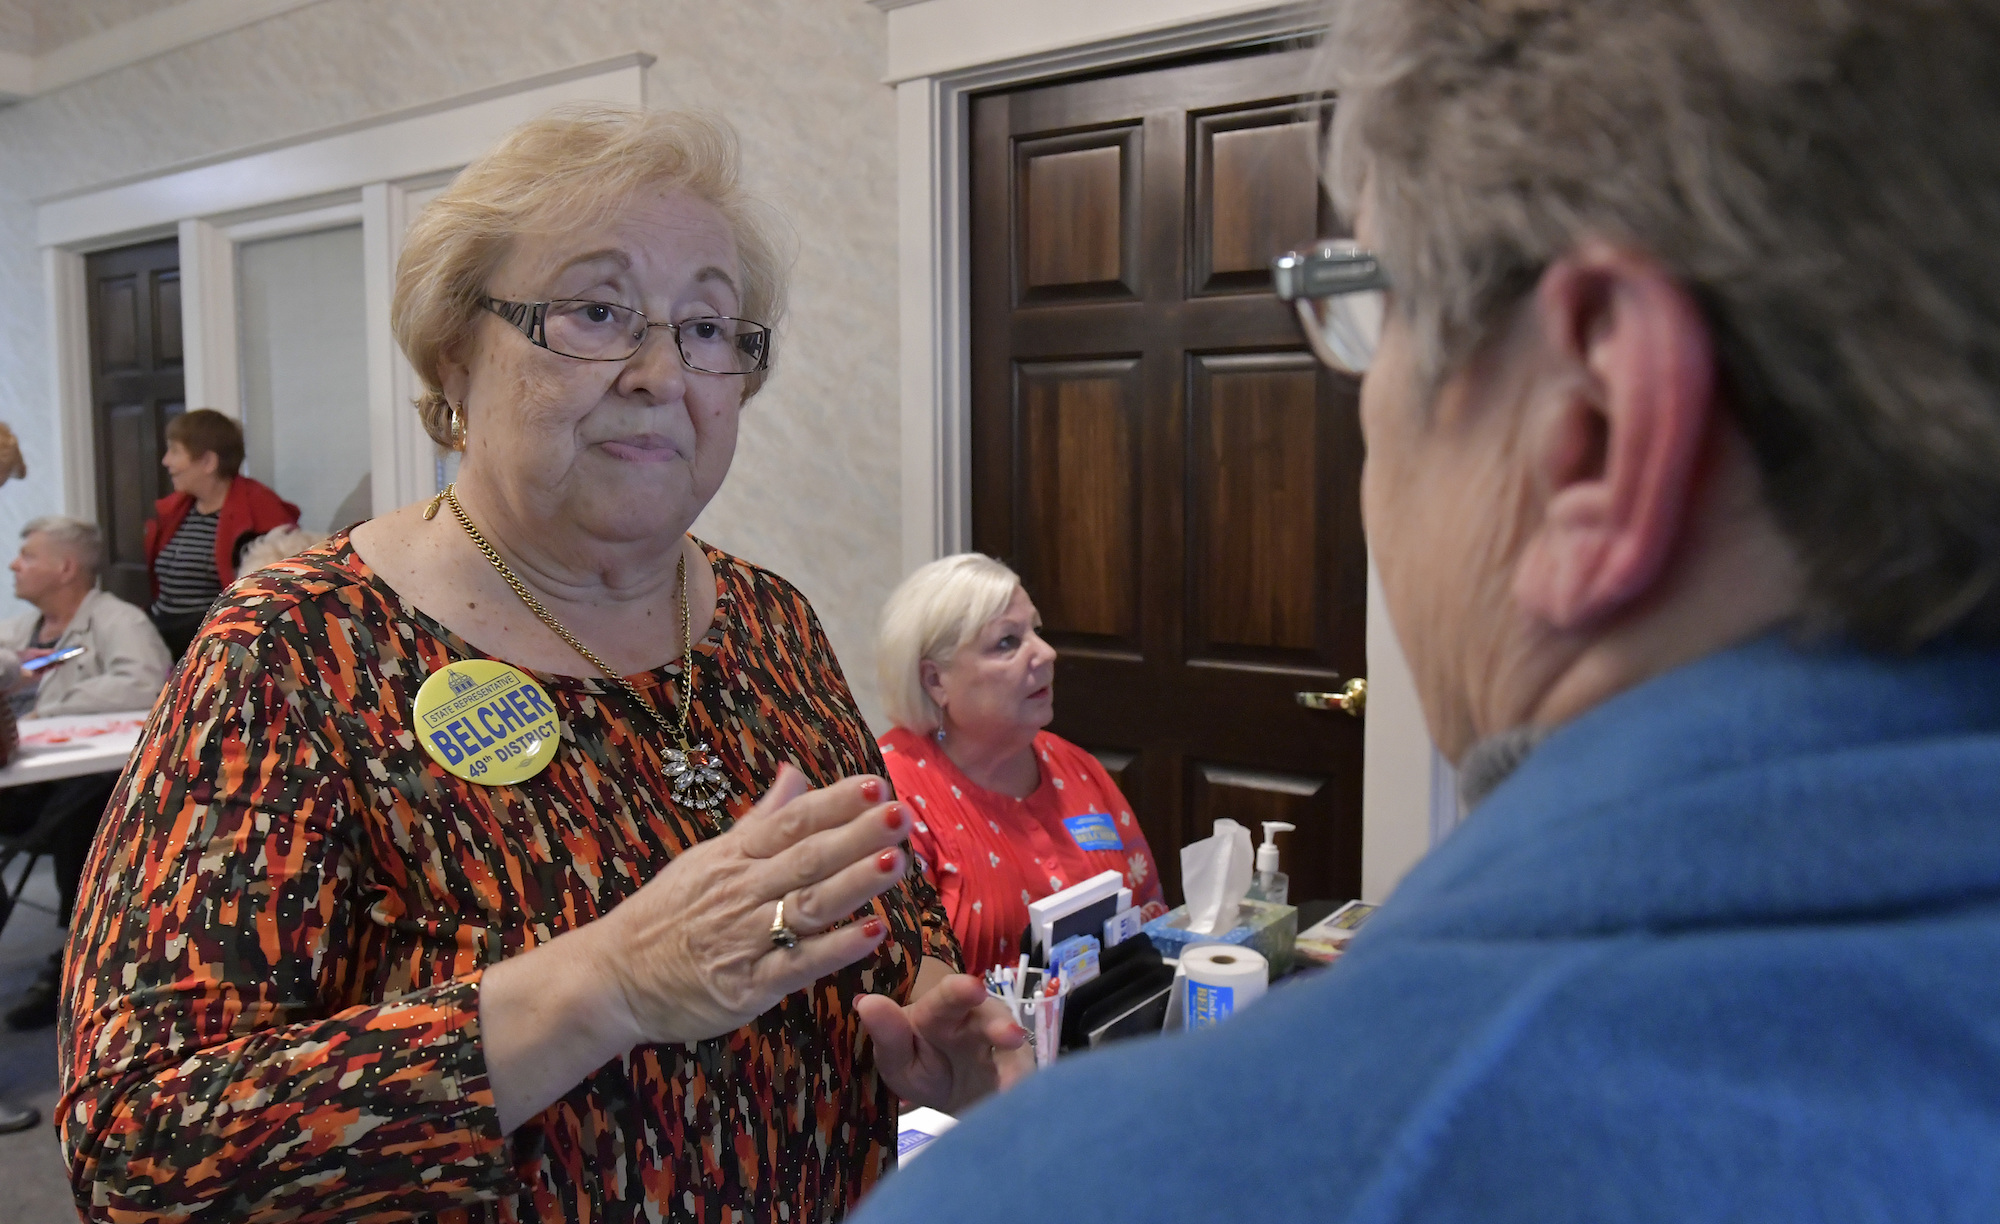 Former Kentucky Rep. Wins Back Her Old Seat In Another Democratic Flip